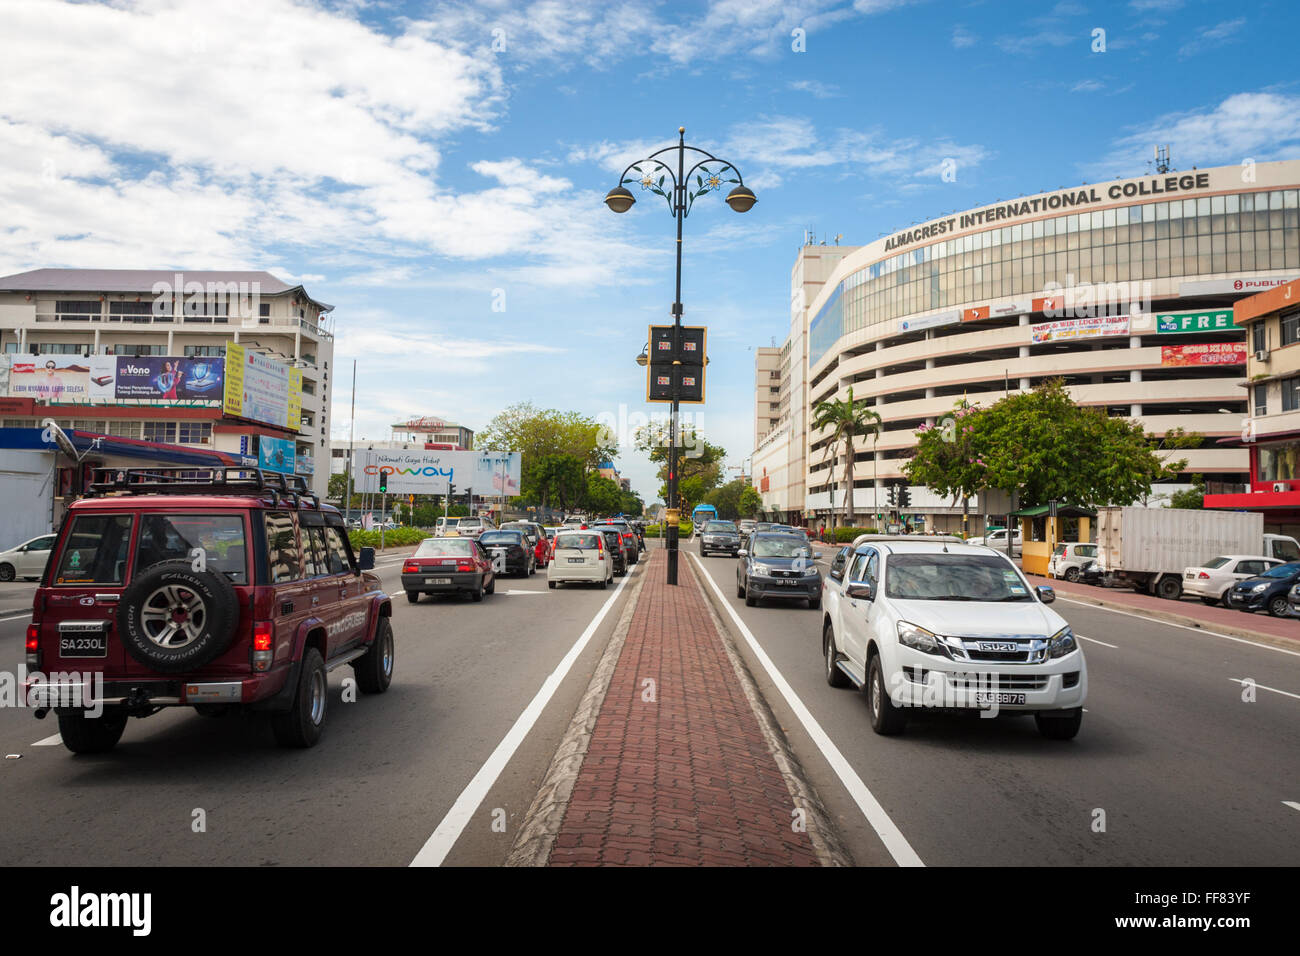 Main thoroughfare through the city of Kota Kinabalu, Sabah, Malaysia Borneo - Stock Image